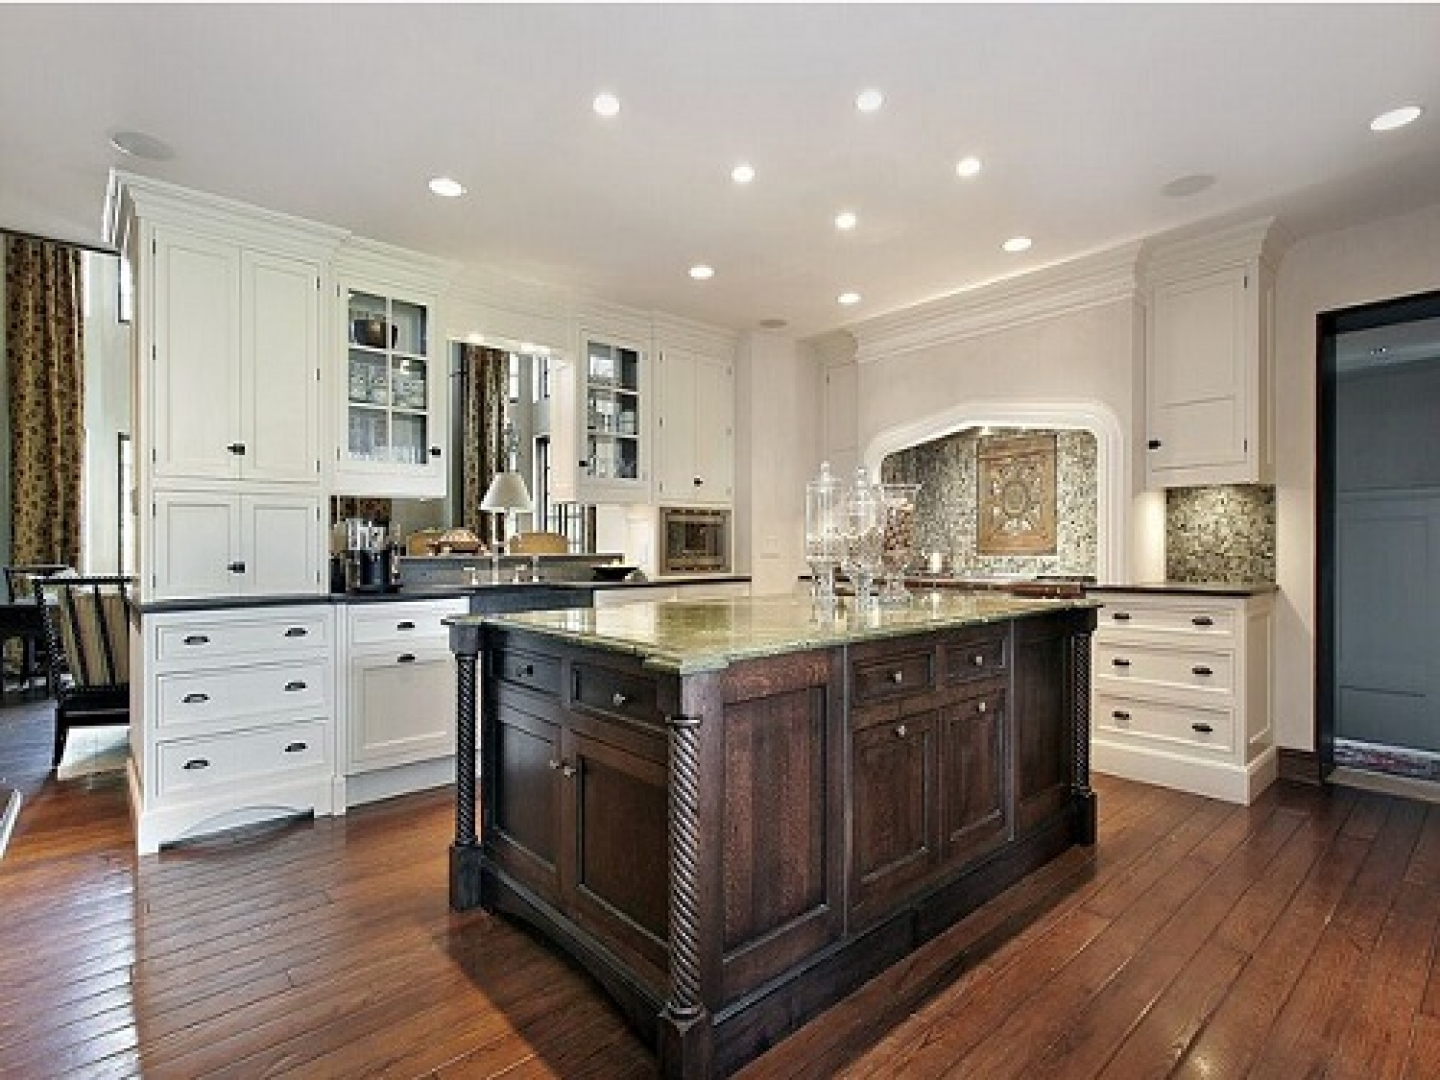 white kitchen cabinets design ideas photo 2 - Kitchen Cabinets Design Ideas Photos